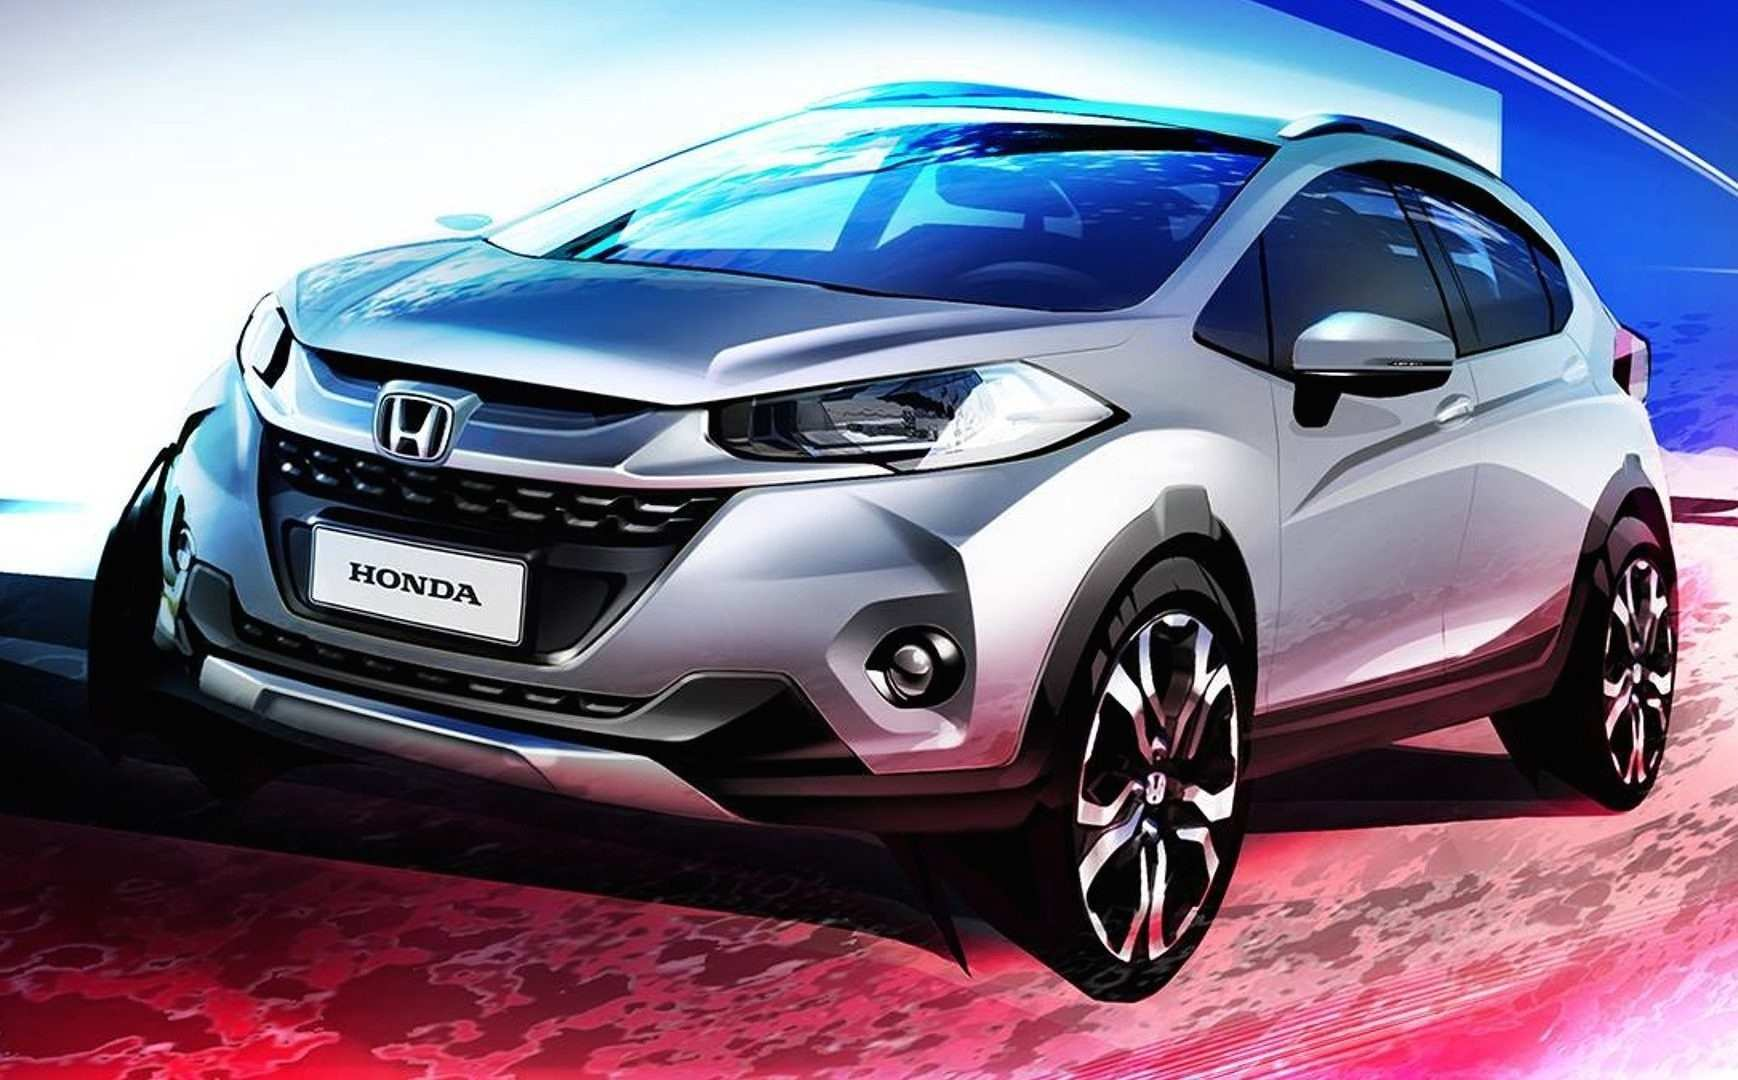 70 All New 2019 Honda Jazz Review Concept with 2019 Honda Jazz Review